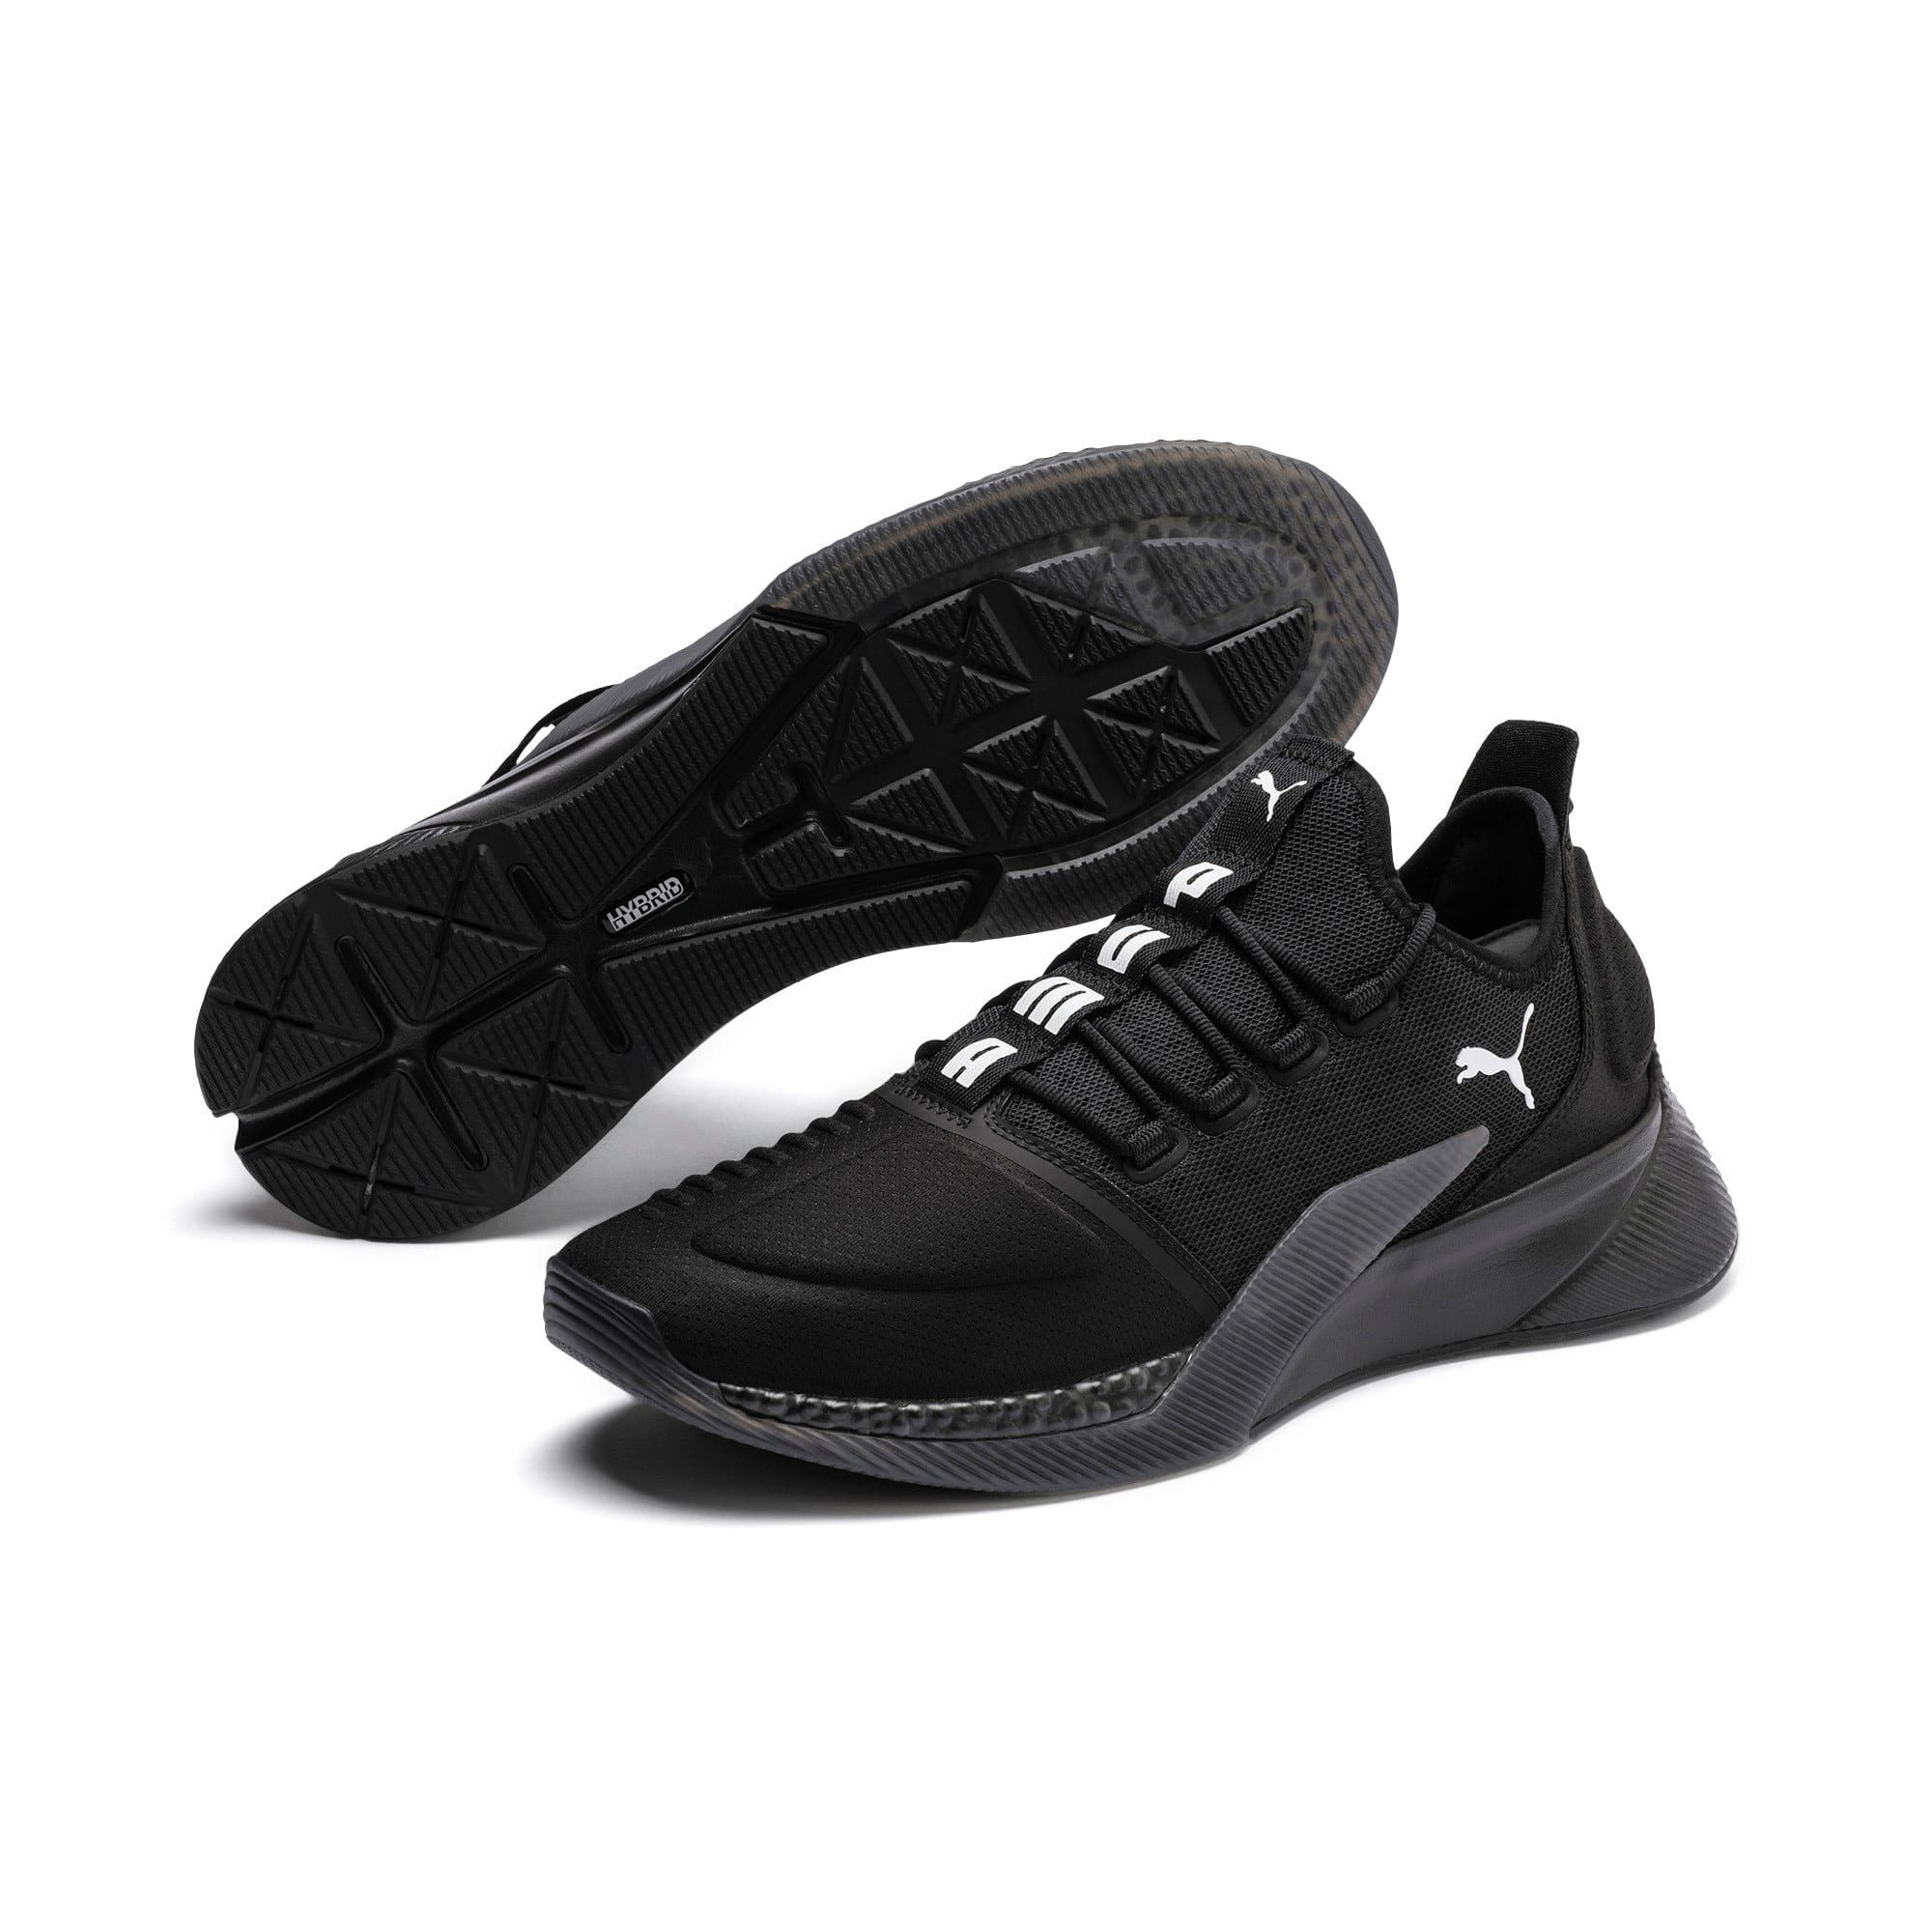 Thumbnail 3 of Xcelerator Running Shoes, Puma Black-Puma Black, medium